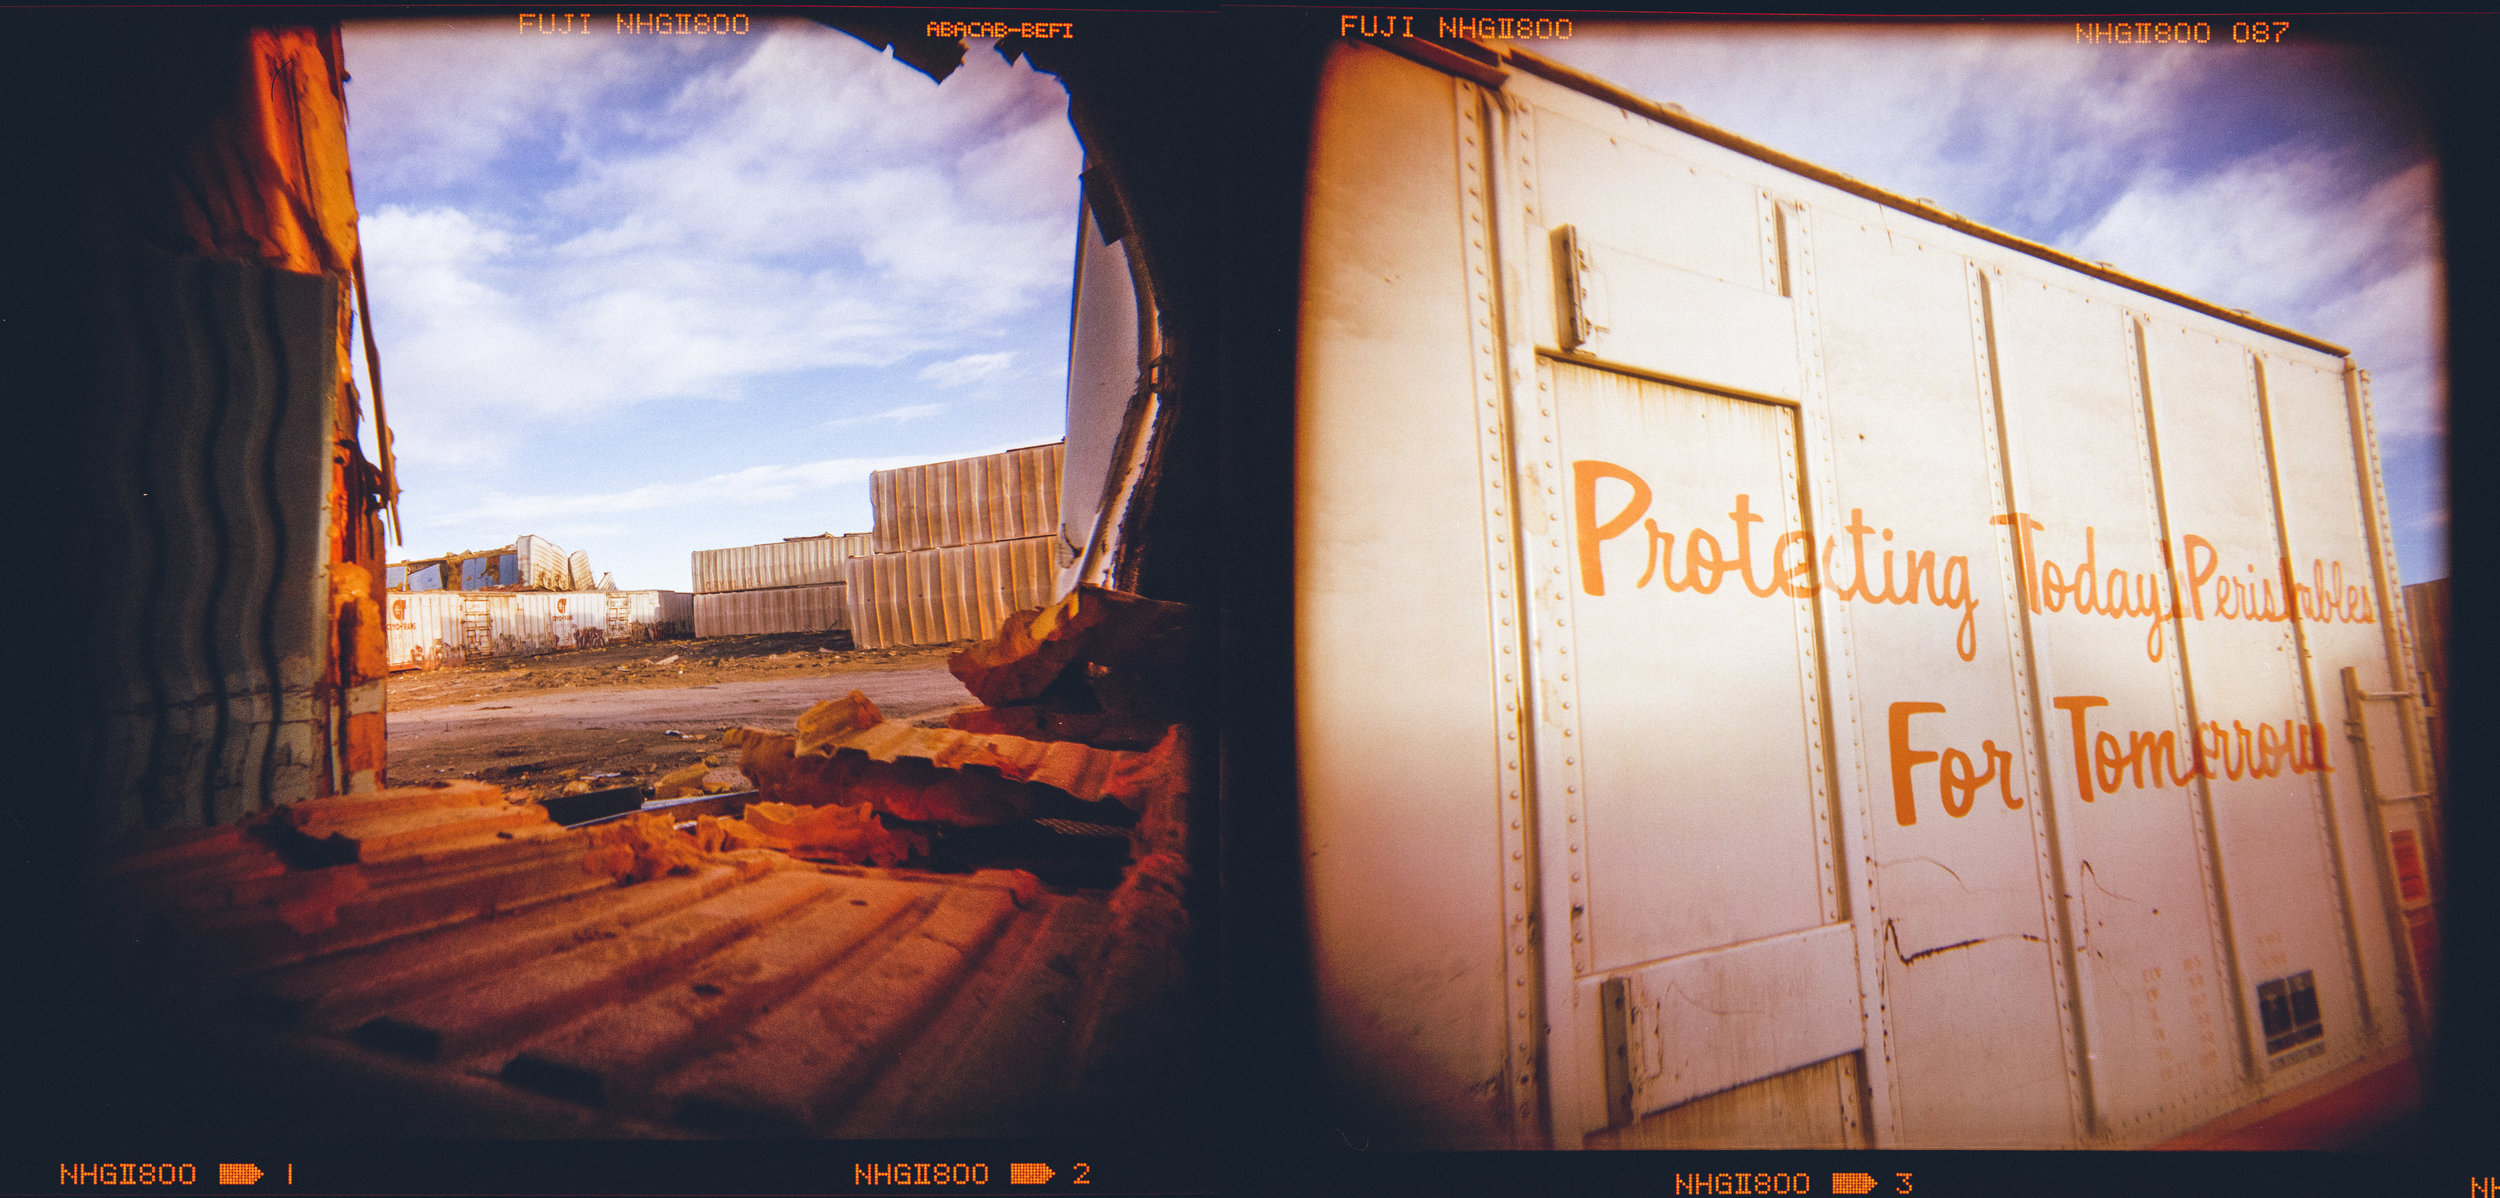 Steel Mill, Pueblo, CO - Holga